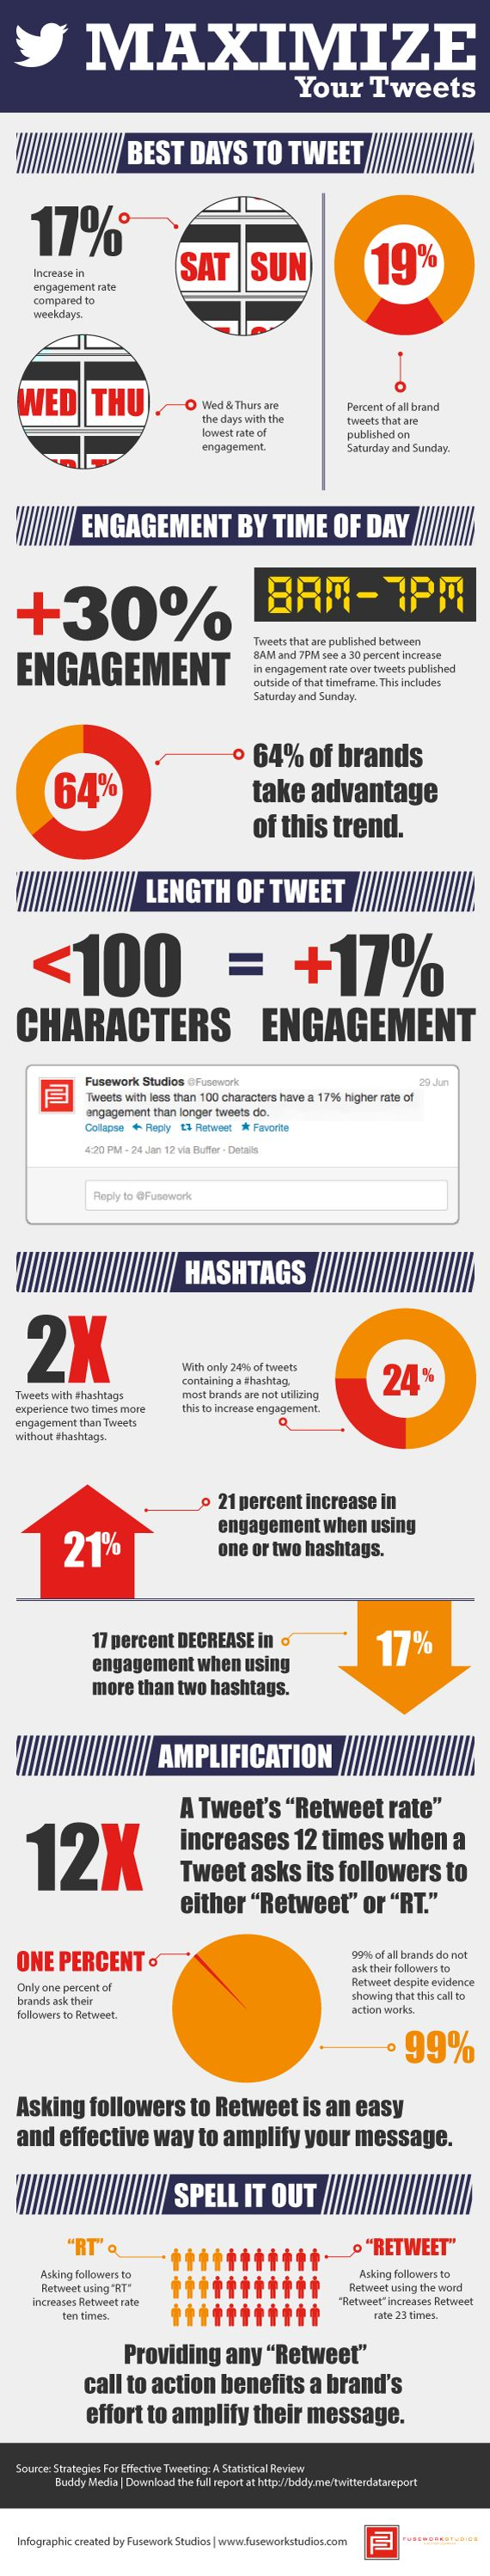 Fresh Data To Maximize Your Impact On Twitter. More Twitter tips @ http://getonthemap.us/twitter/blog/